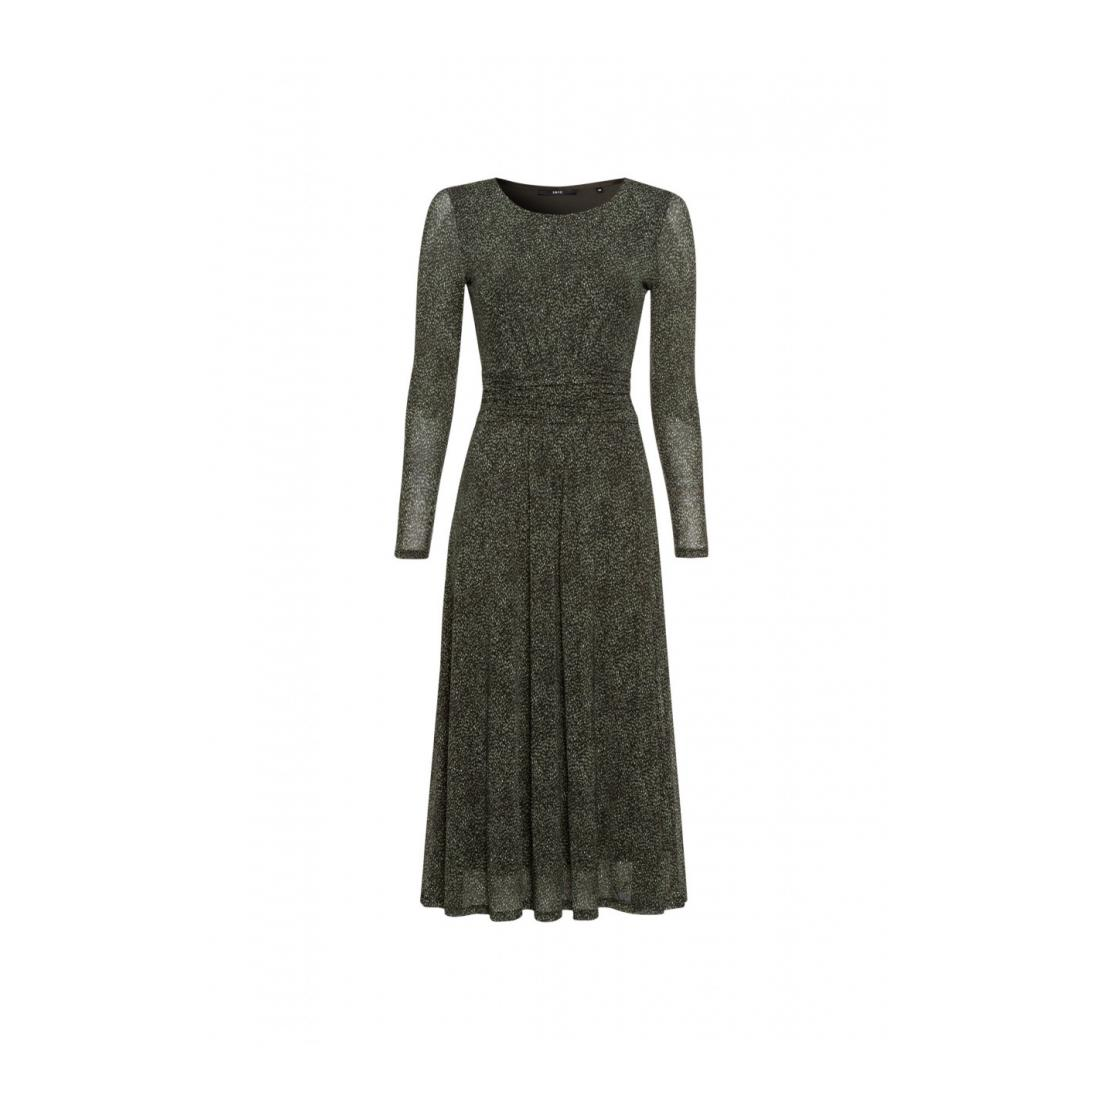 Zero Kleider lang Damen Dress